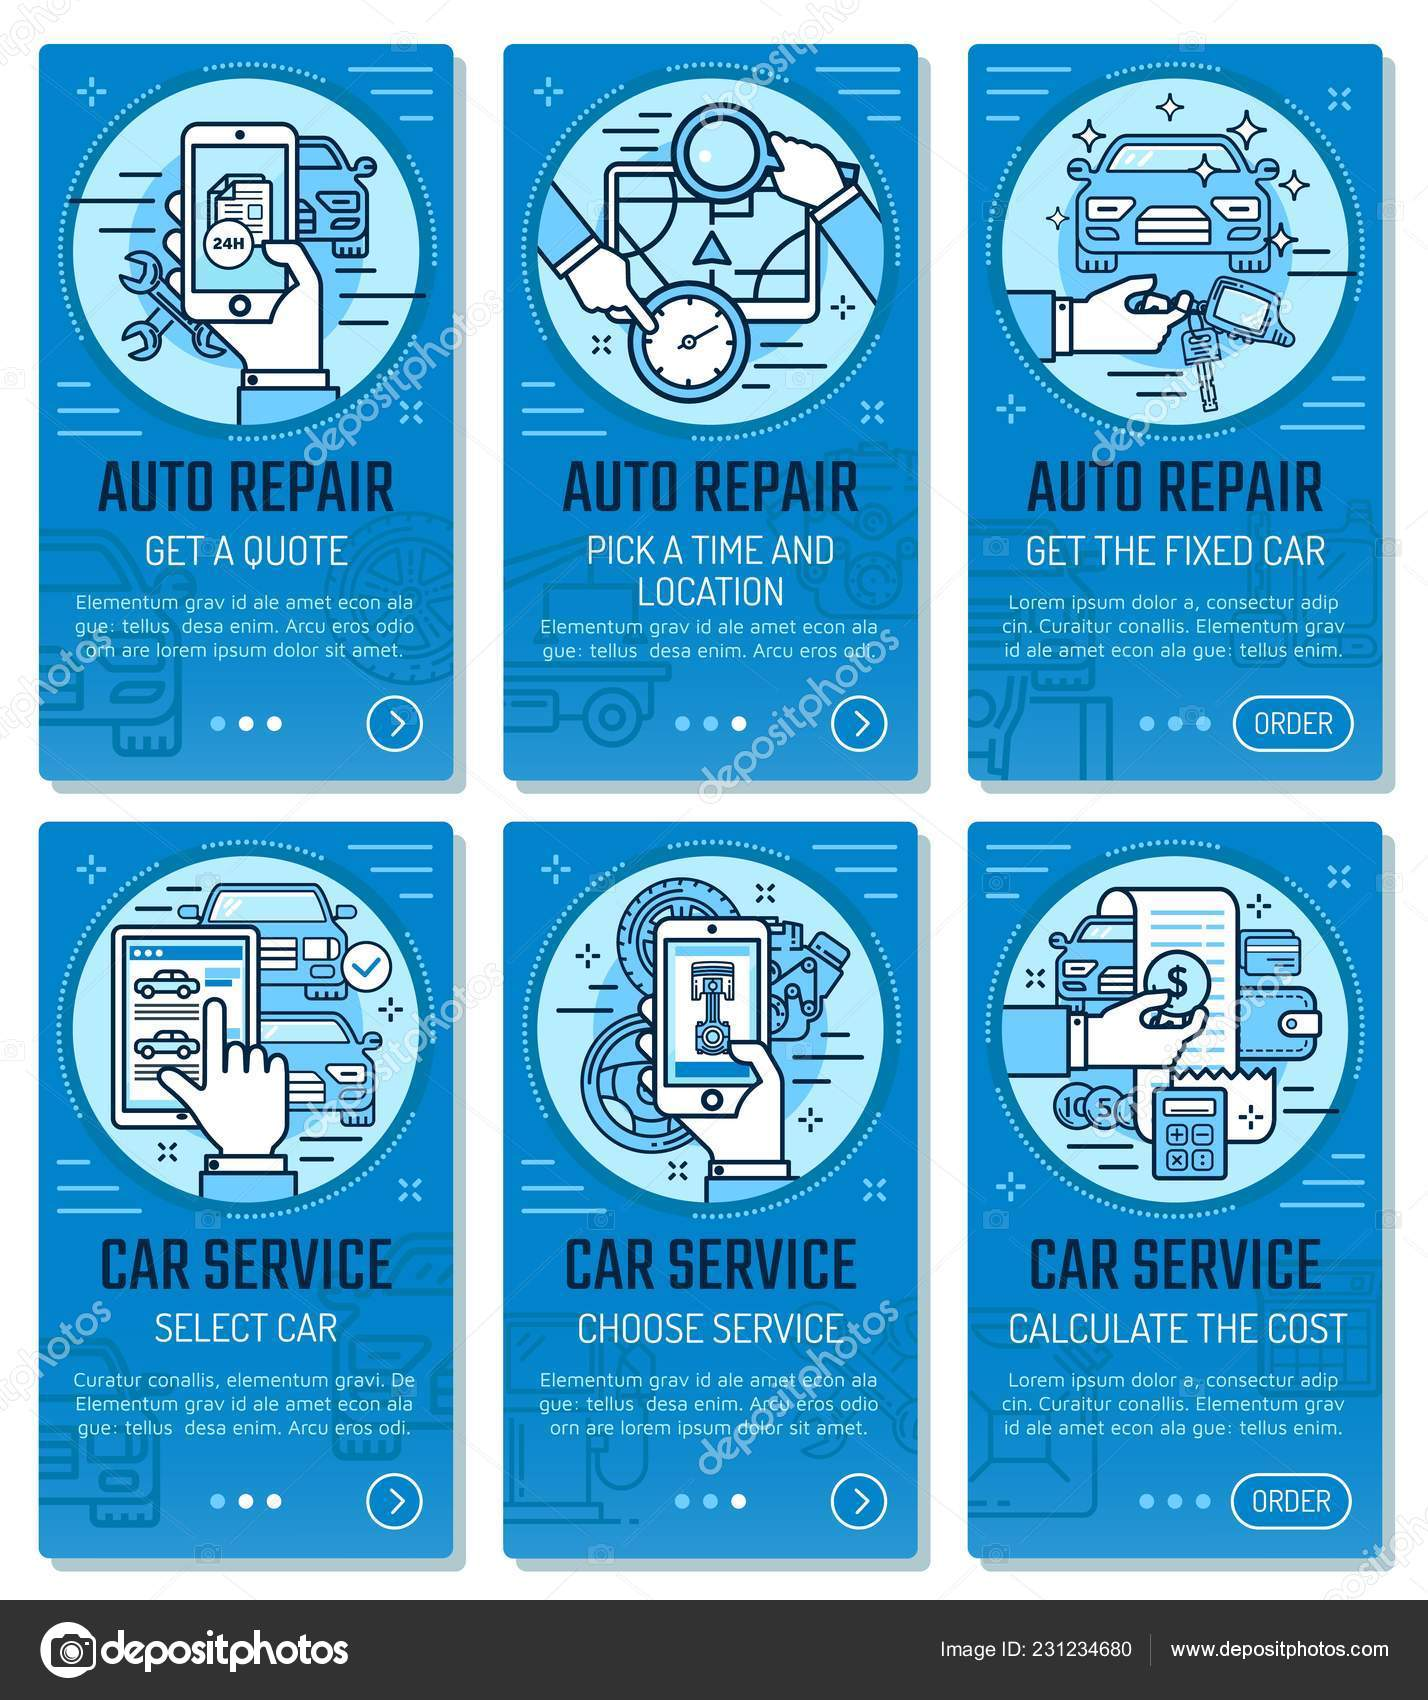 free auto repair estimate app